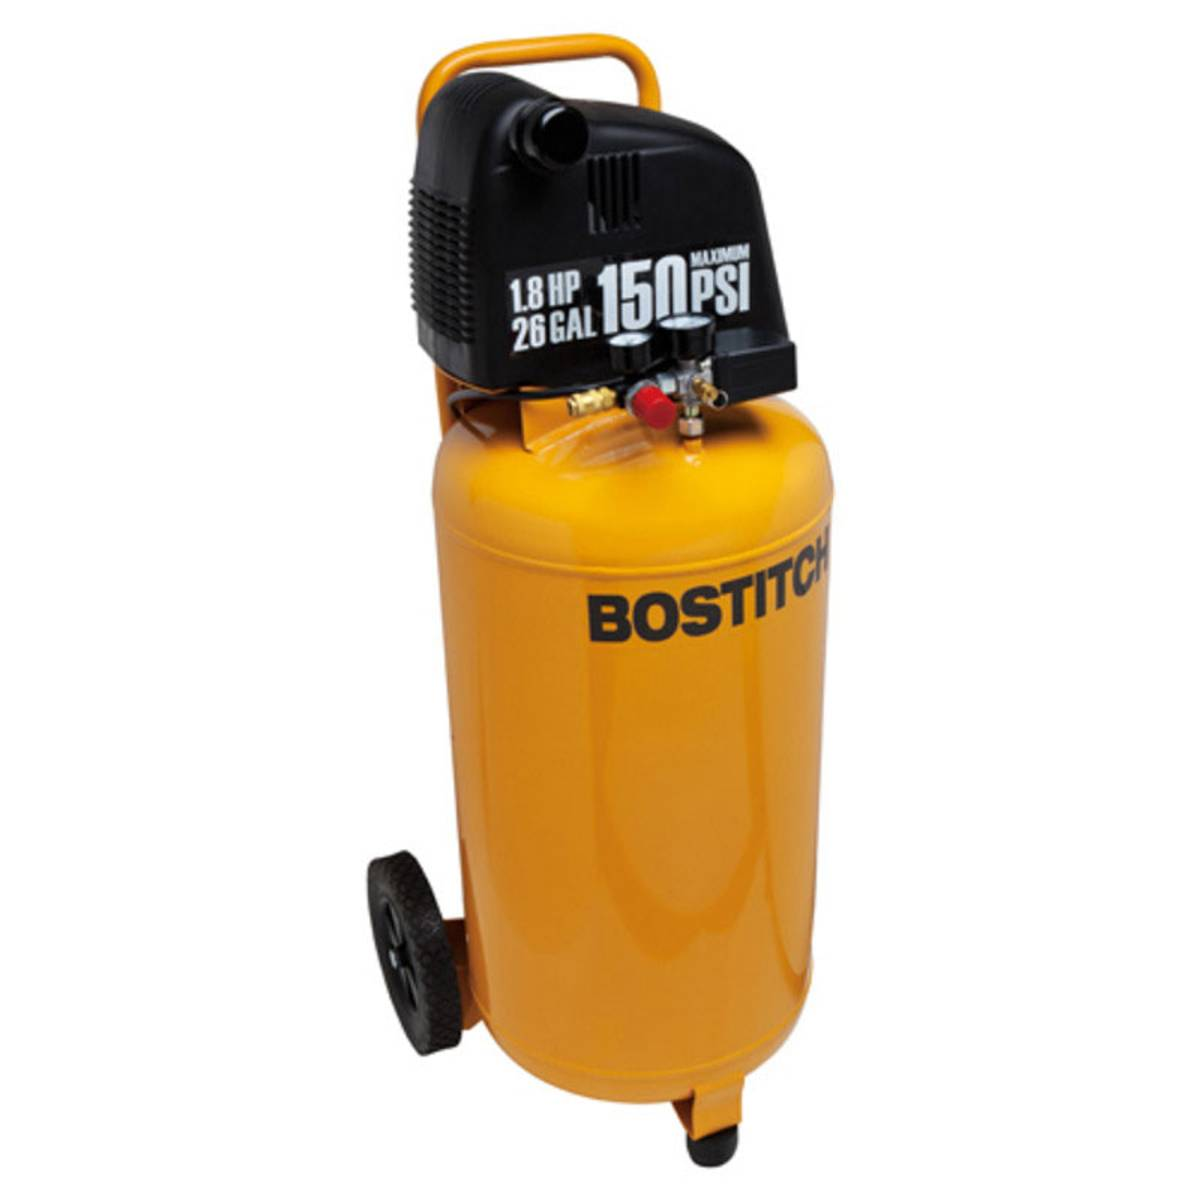 Bostitch Oil Free Air Compressor from Blain's Farm and Fleet